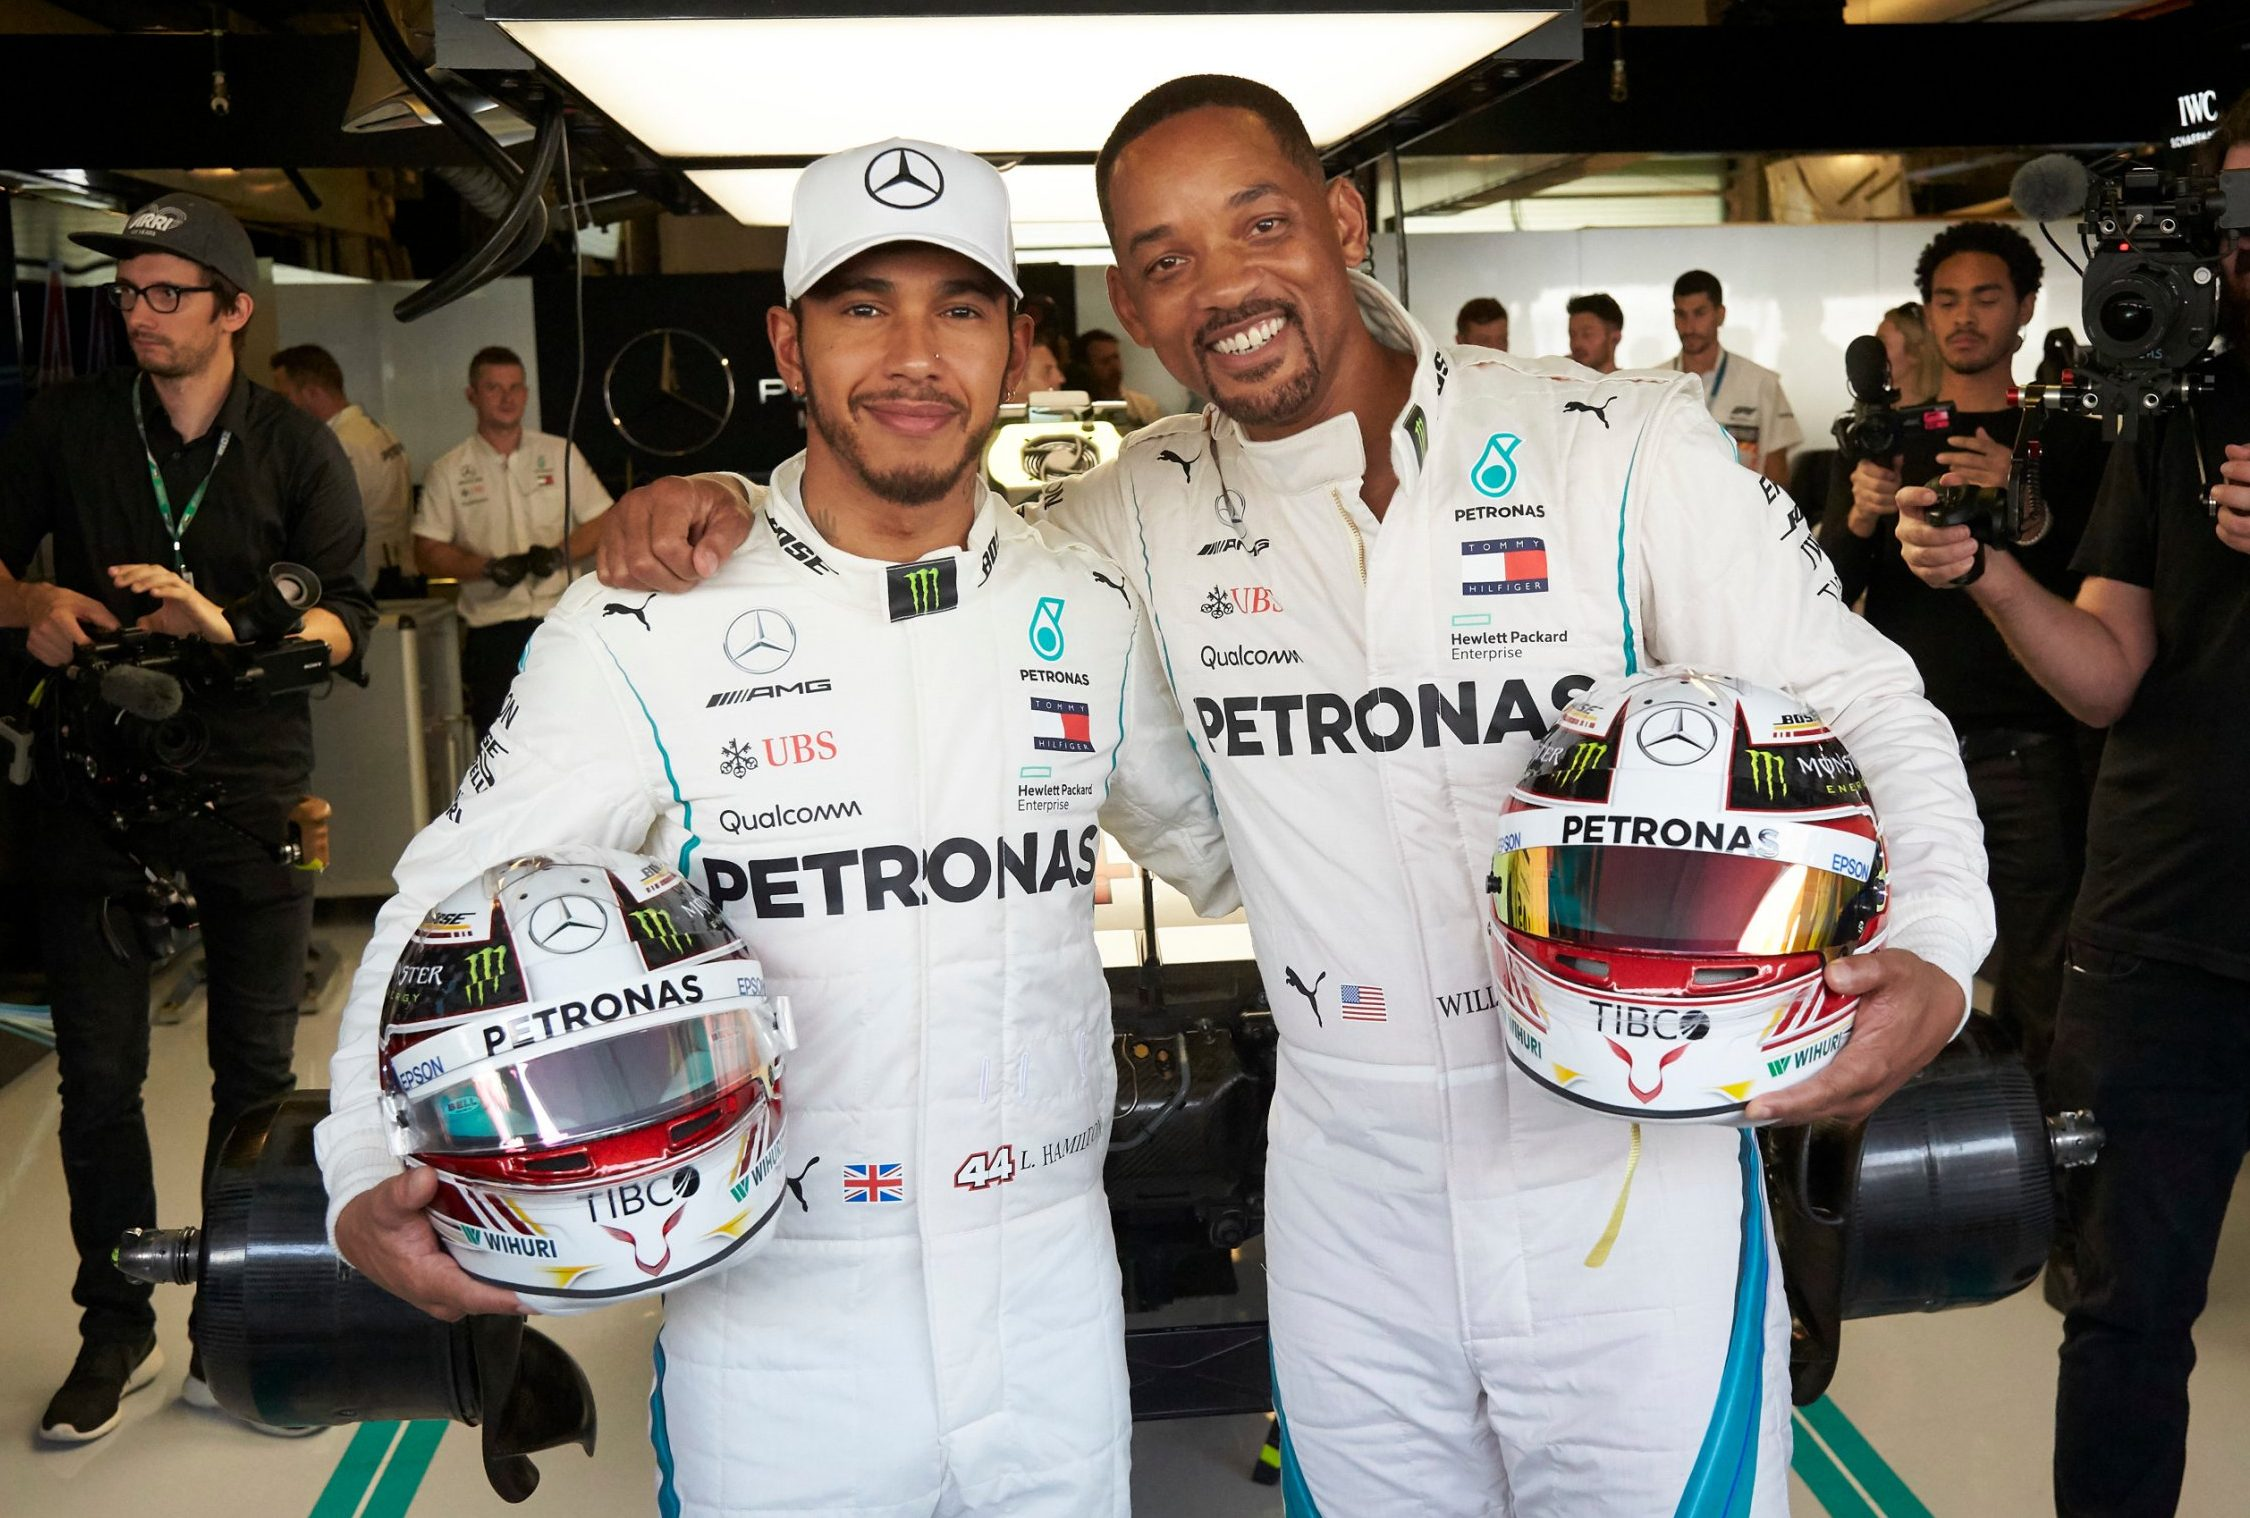 Mandatory Credit: Photo by Steve Etherington/LAT Images/REX (9991948c) Lewis Hamilton, Mercedes AMG F1 and Will Smith pose in the Mercedes garage during the Abu Dhabi GP at Yas Marina Circuit on November 25, 2018 in Yas Marina Circuit, United Arab Emirates. 2018 Abu Dhabi GP - 25 Nov 2018